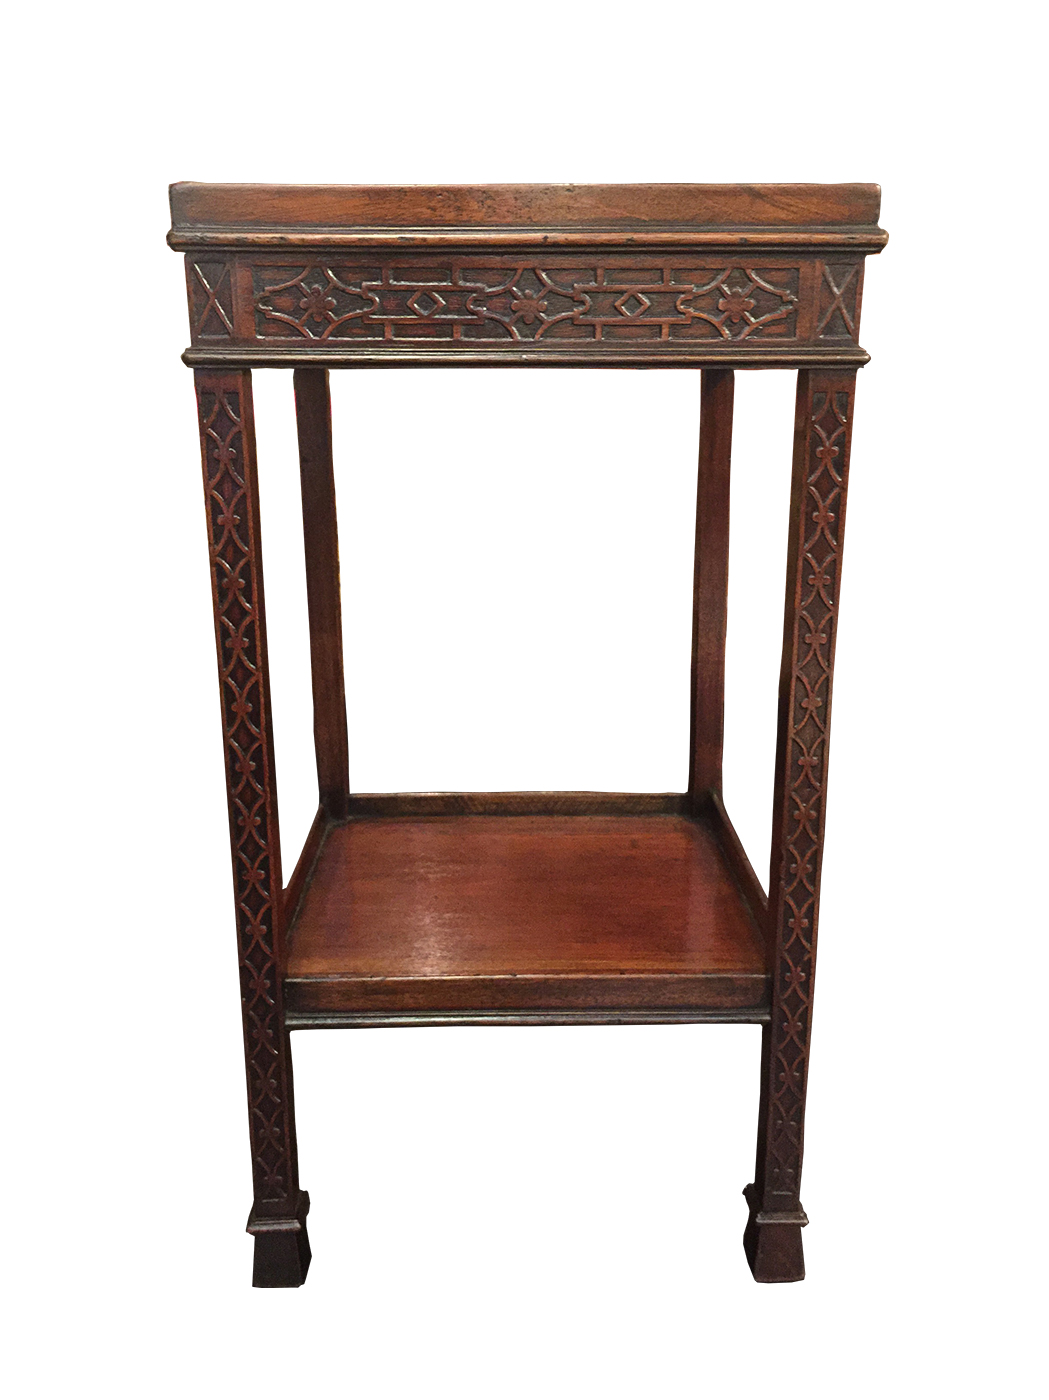 Delicieux Antique Carved Mahogany Chippendale Style Side Table Circa 1820 At Garden  Court Antiques